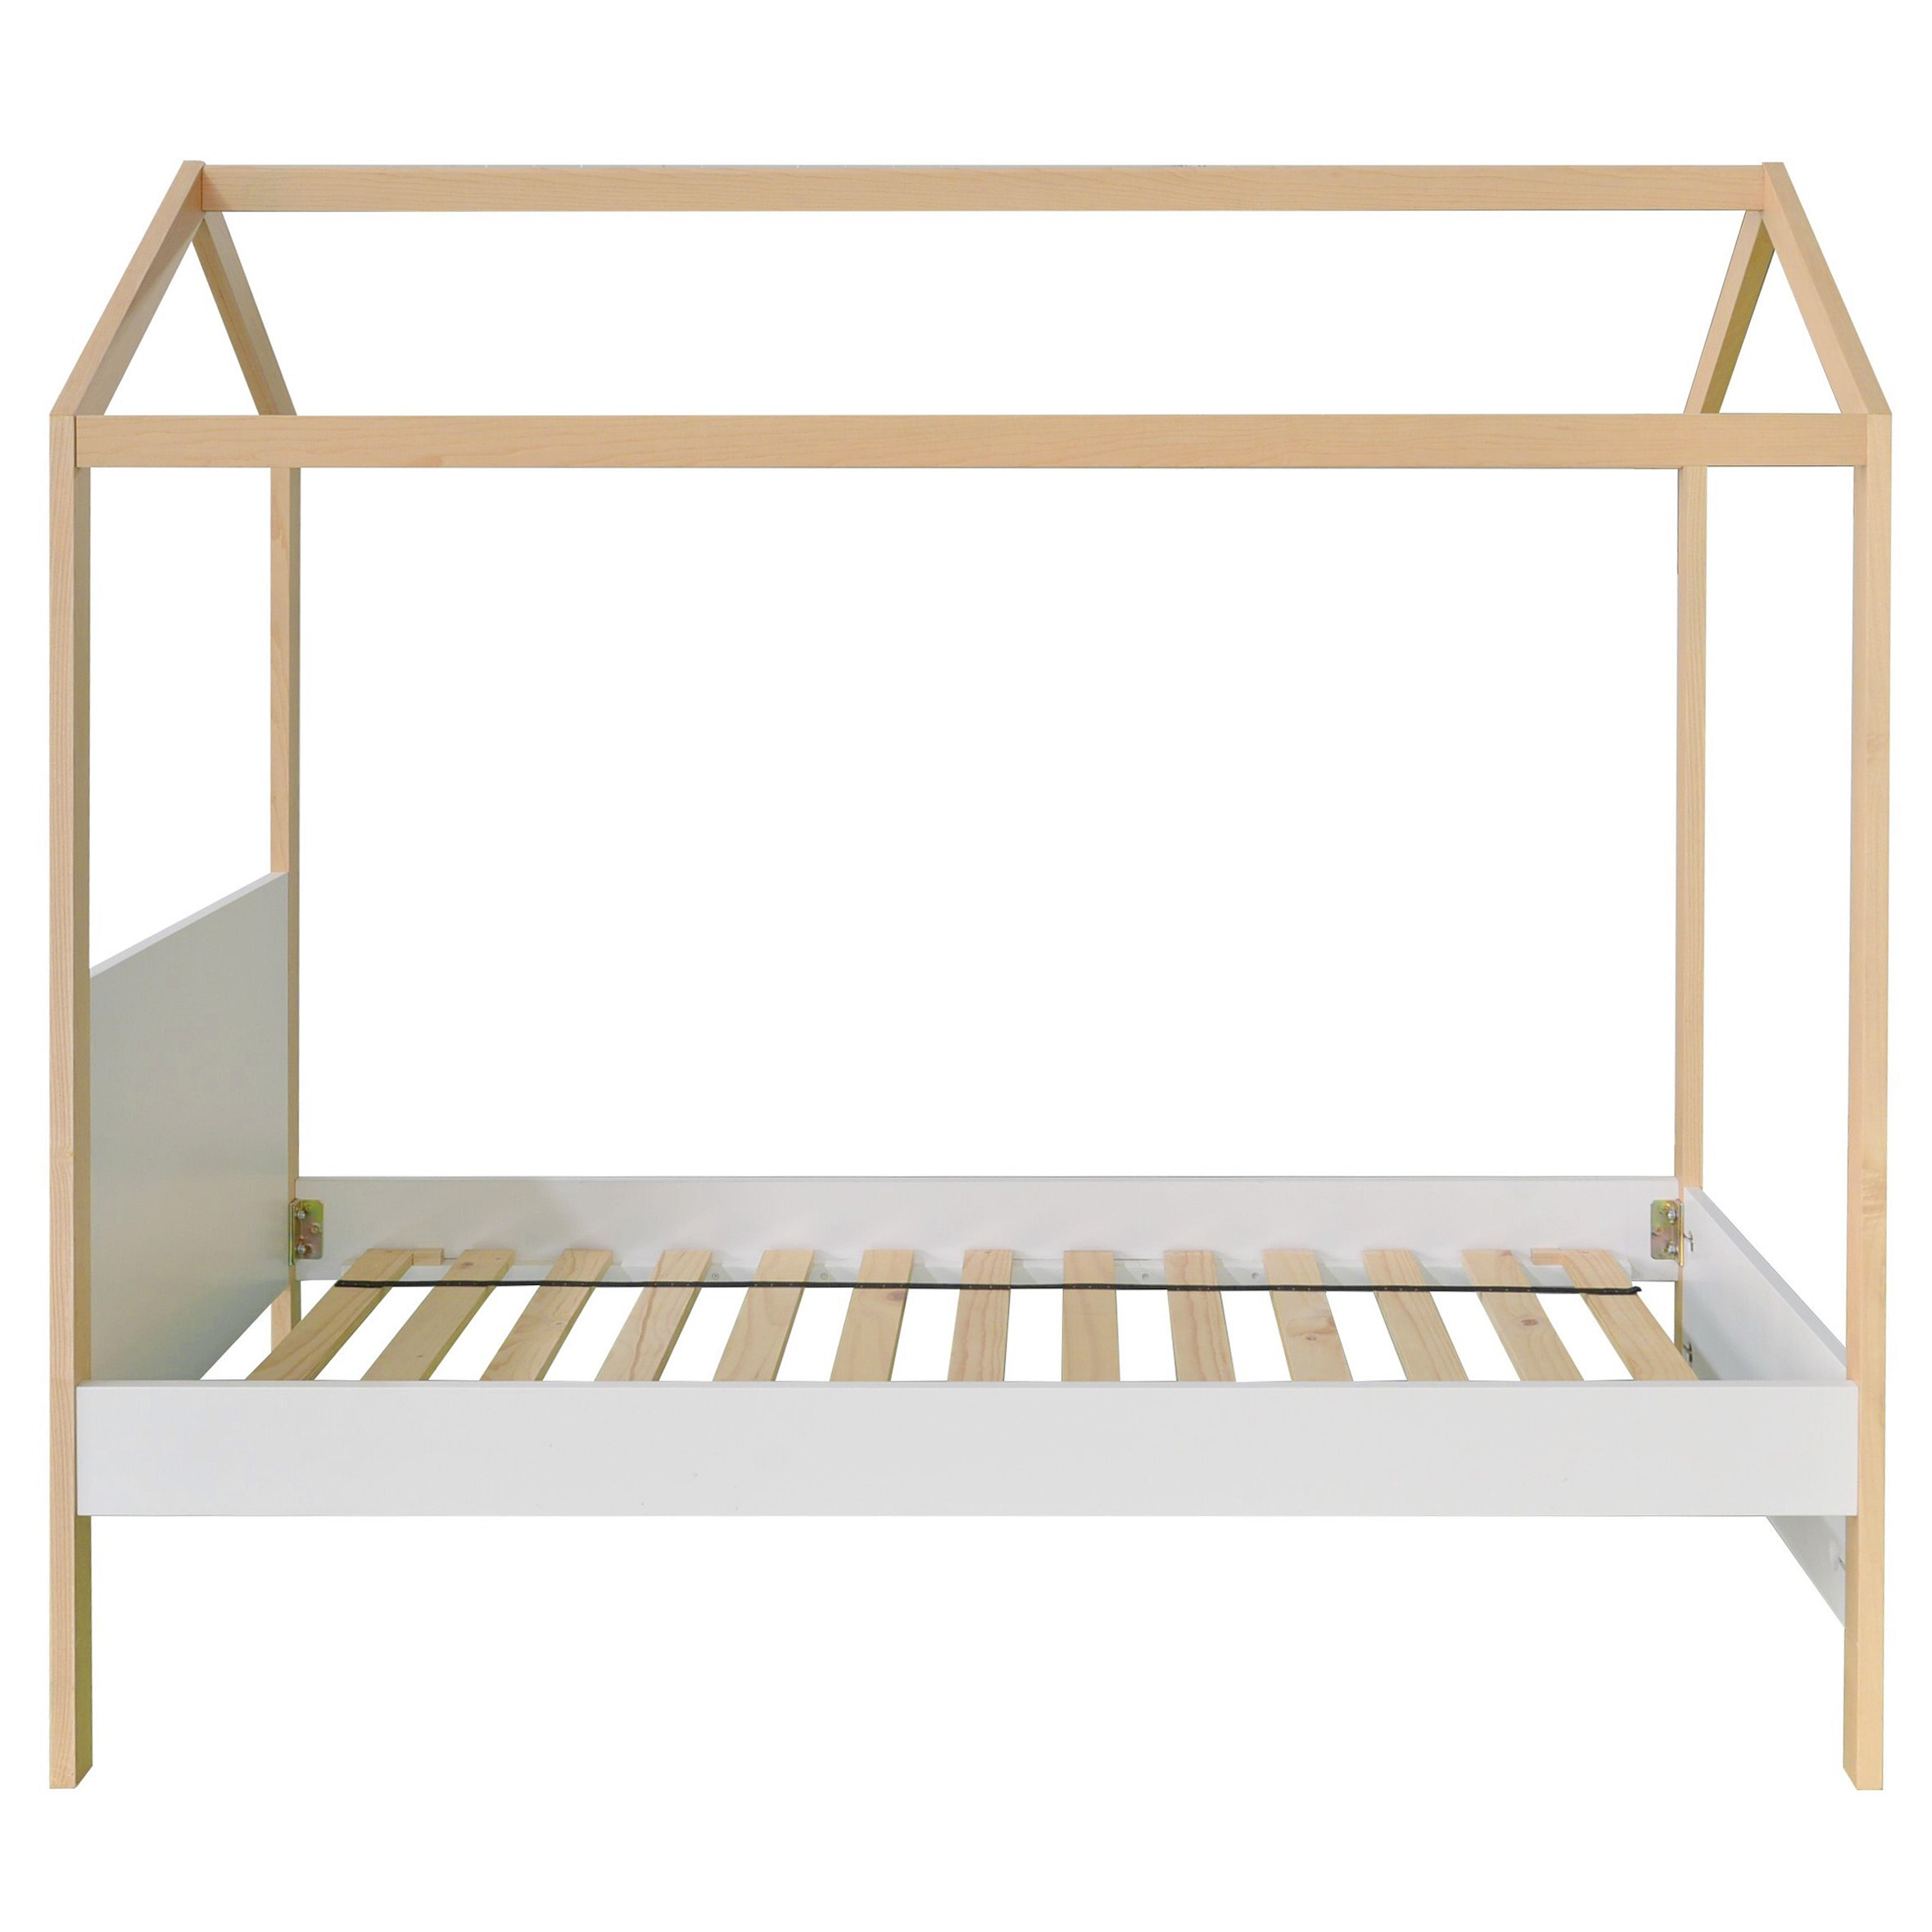 Honiton Canopy Bed, Single